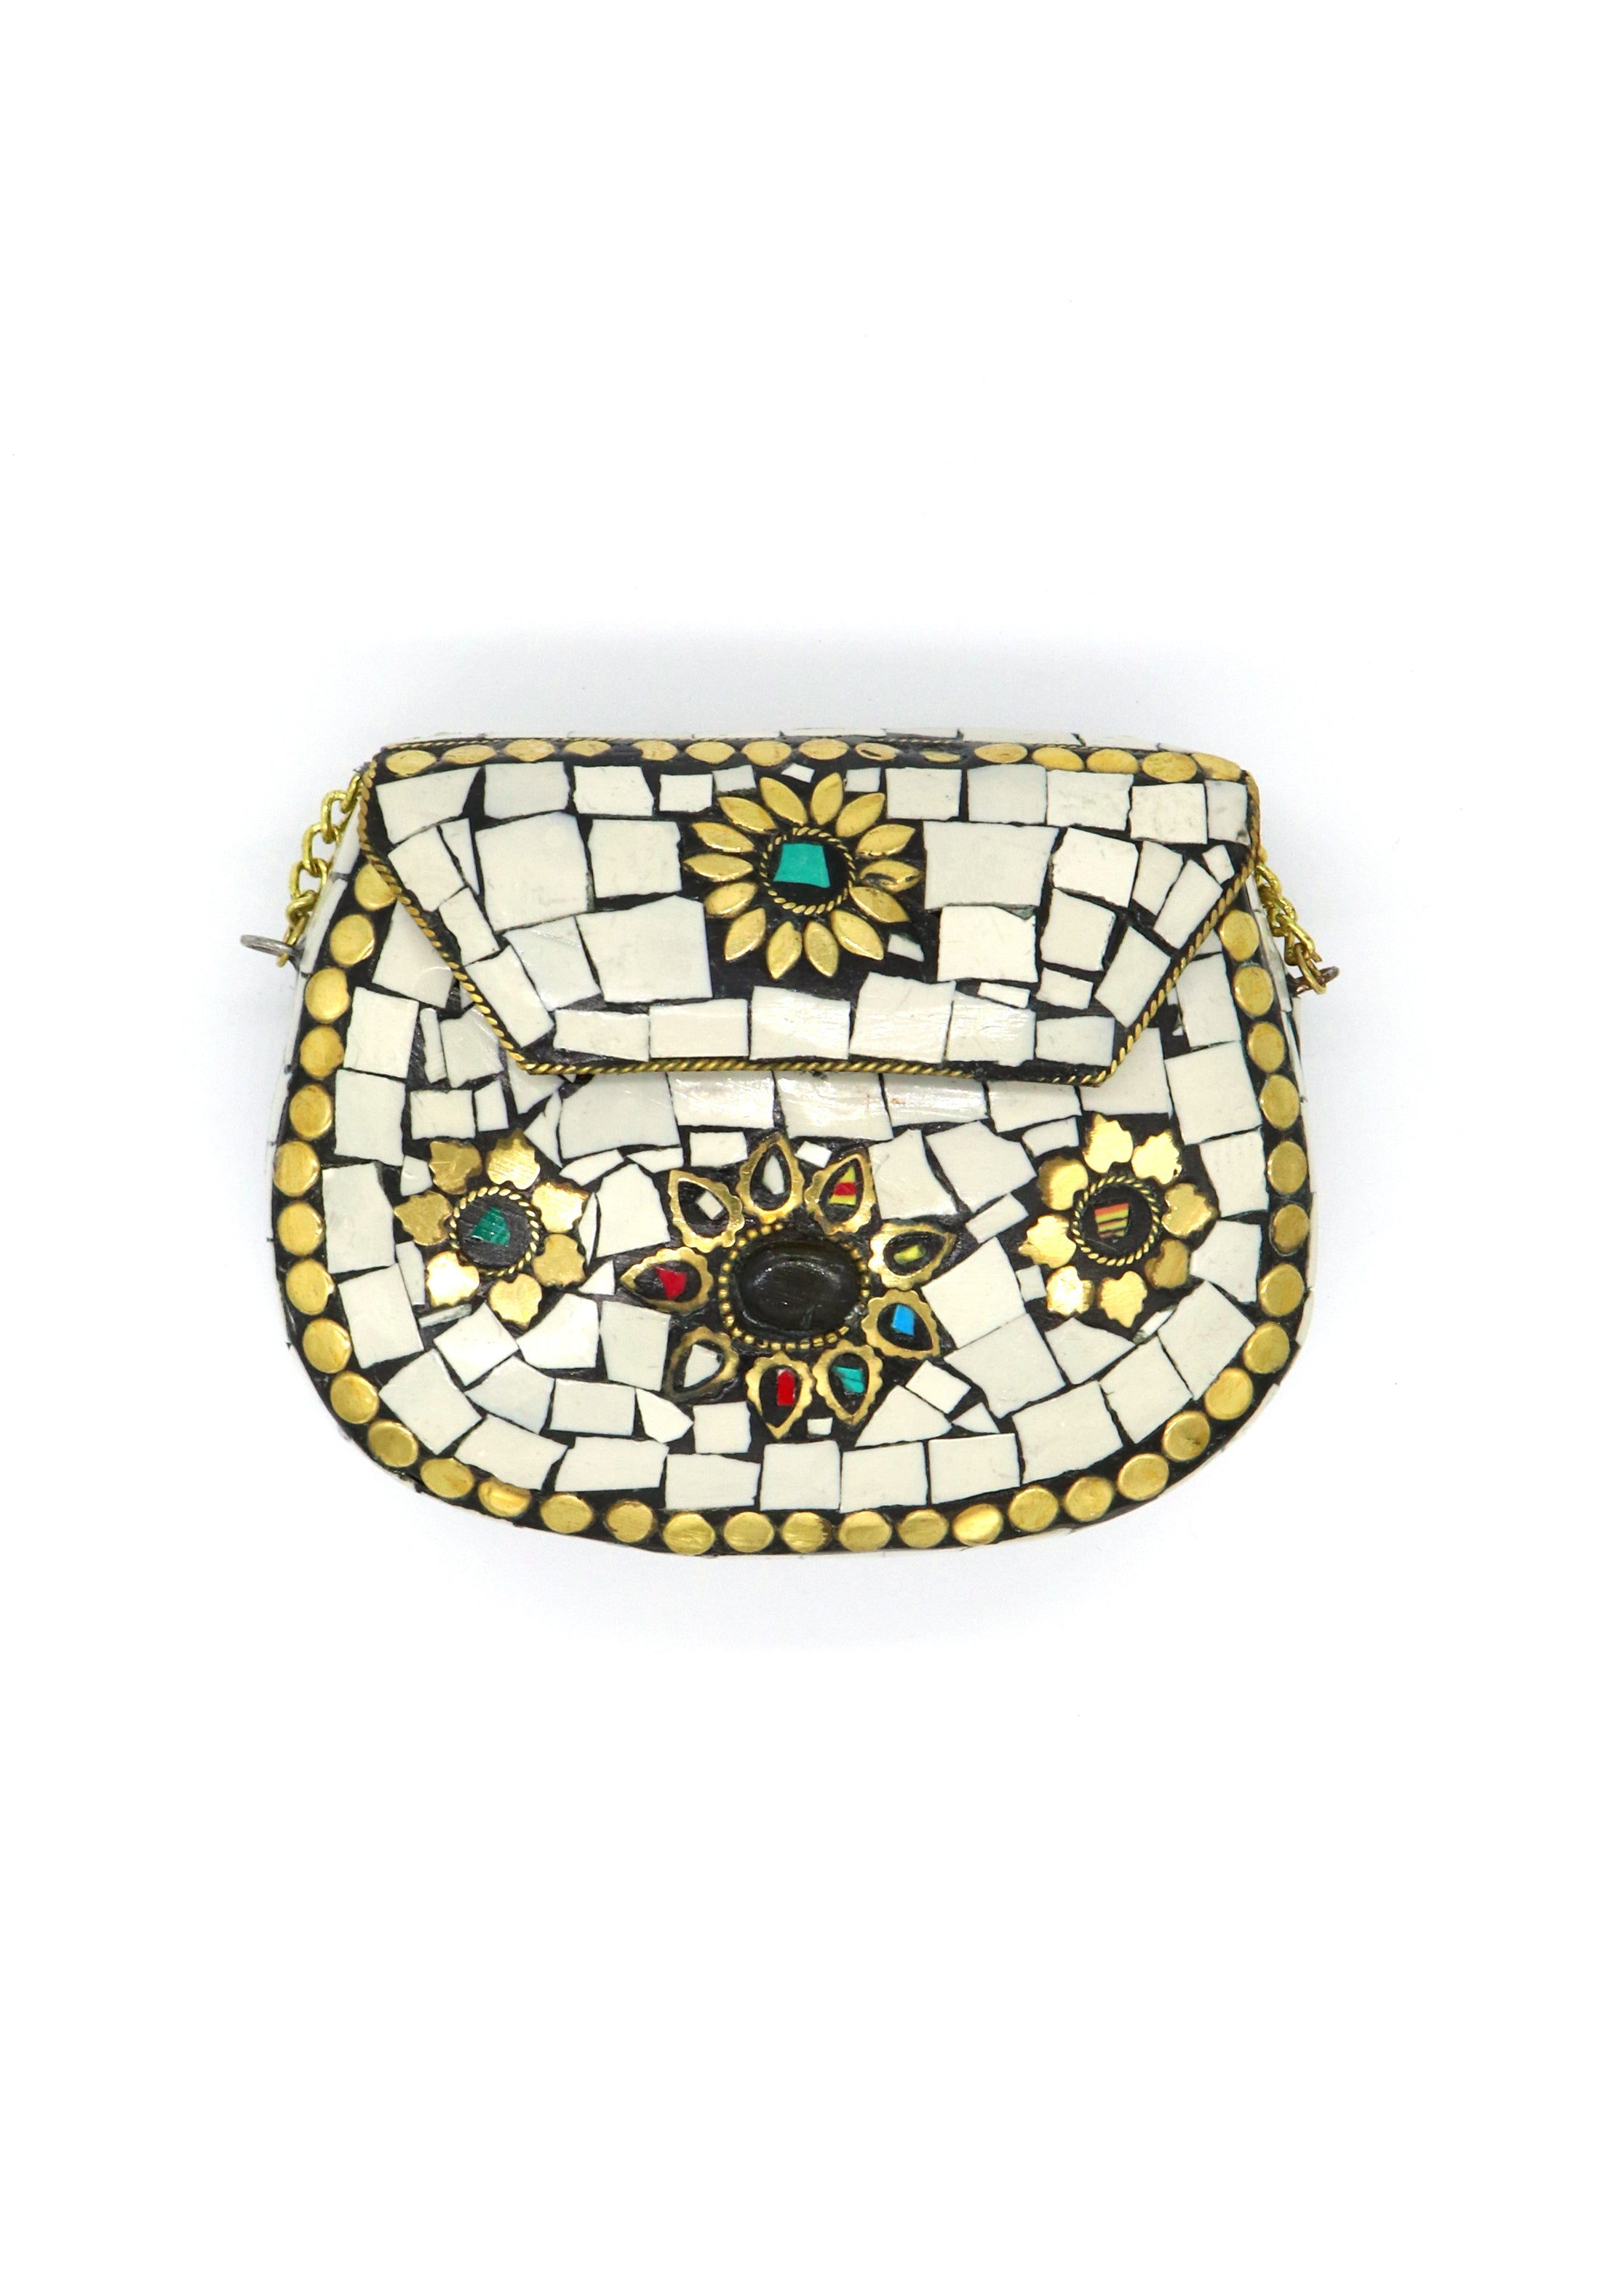 Tibetan Jeweled Purse — Small